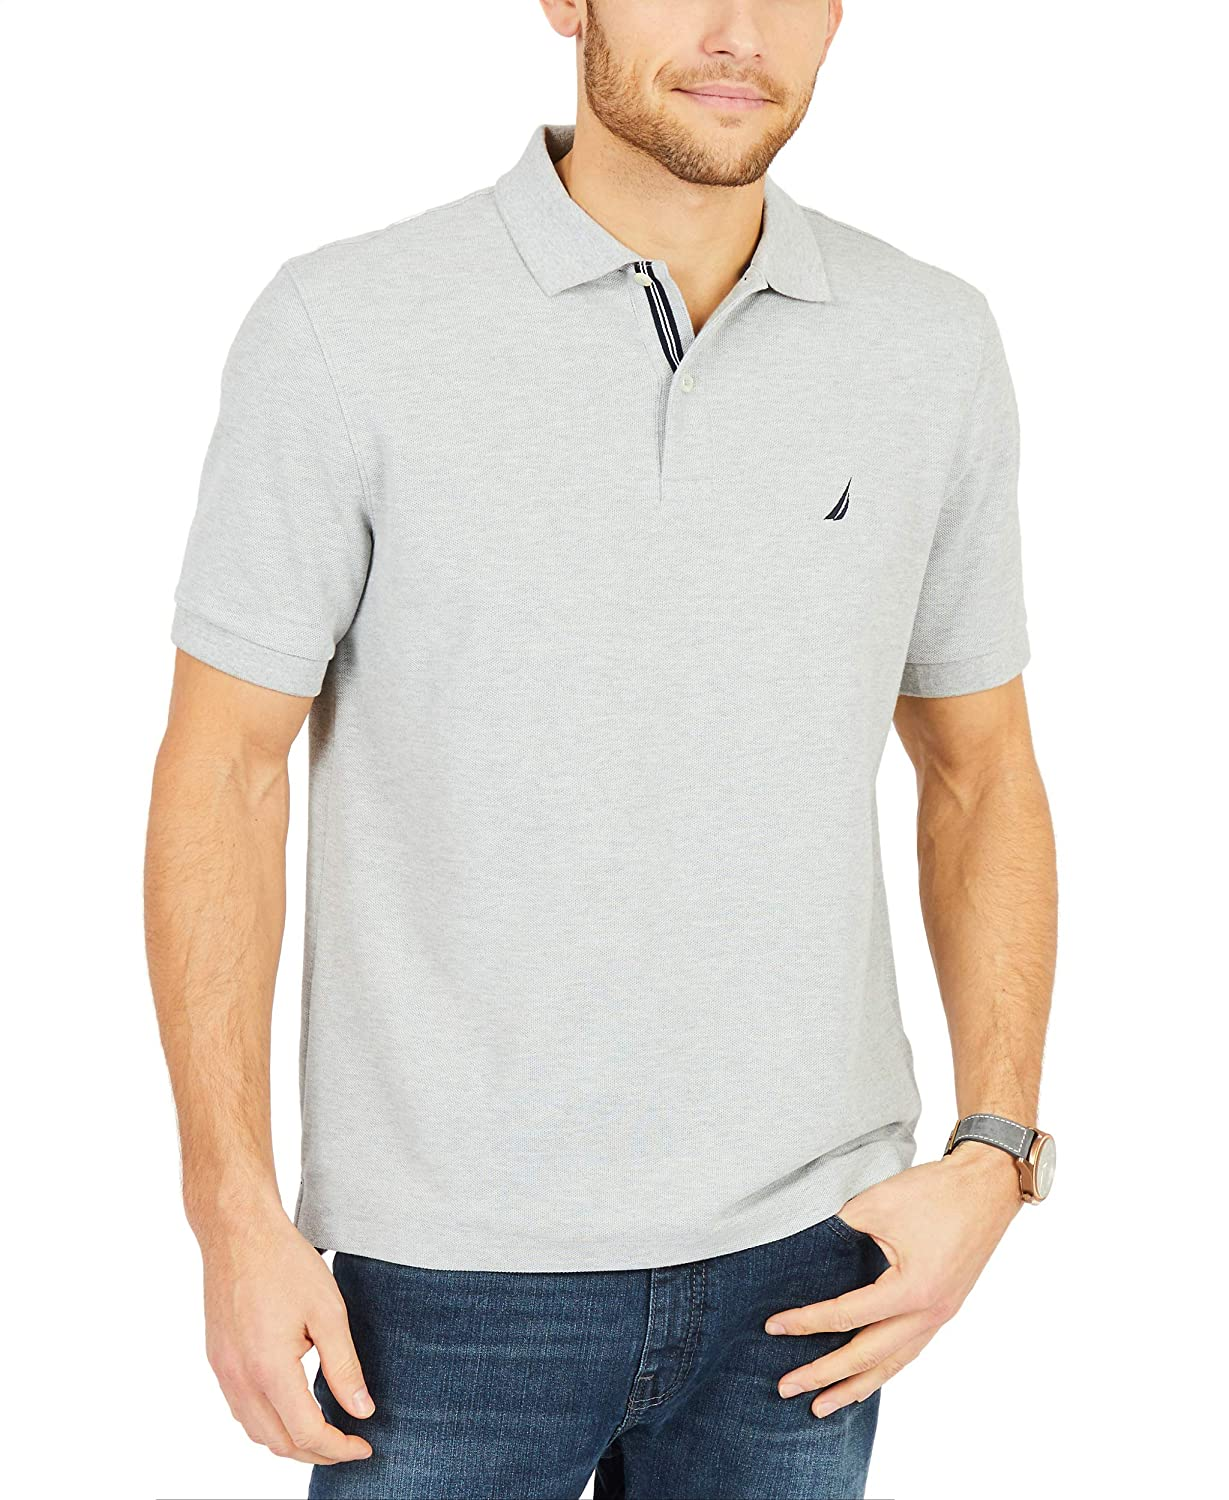 gris (gris Heather 0gh) L Nautica Solid ancre Deck Classic Fit, Polo Homme